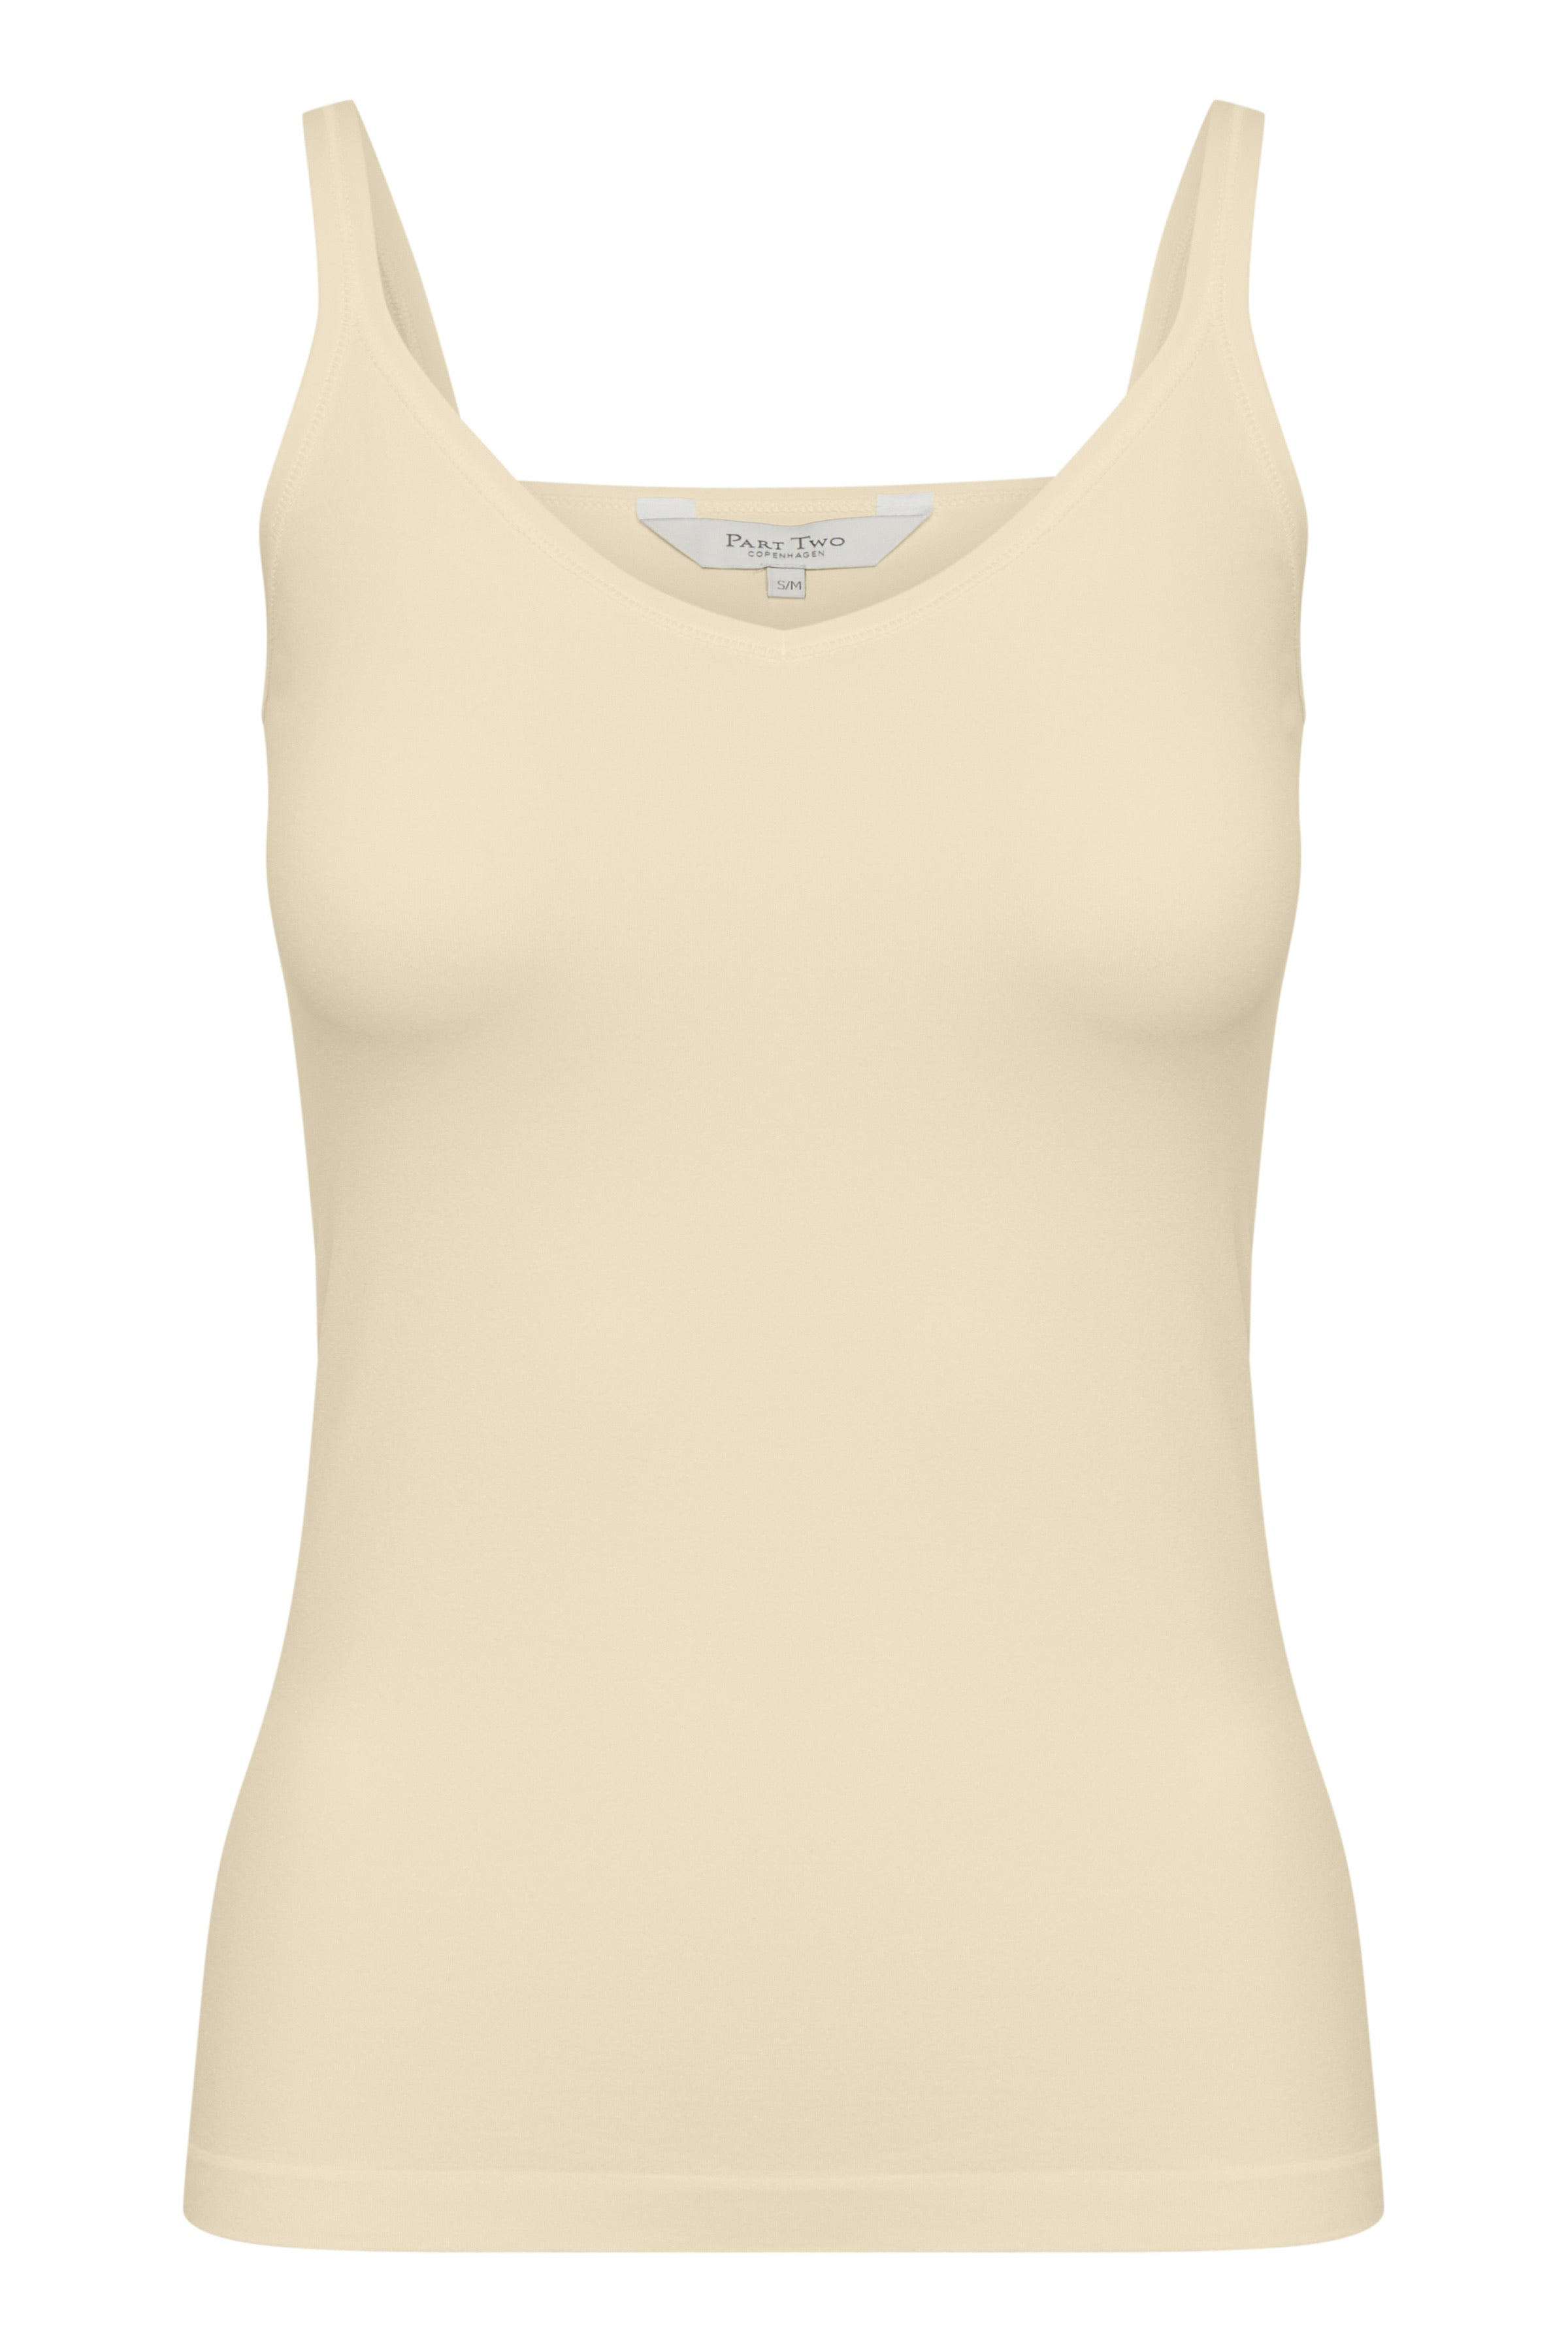 Part Two Hydda vest top- skin-30300547